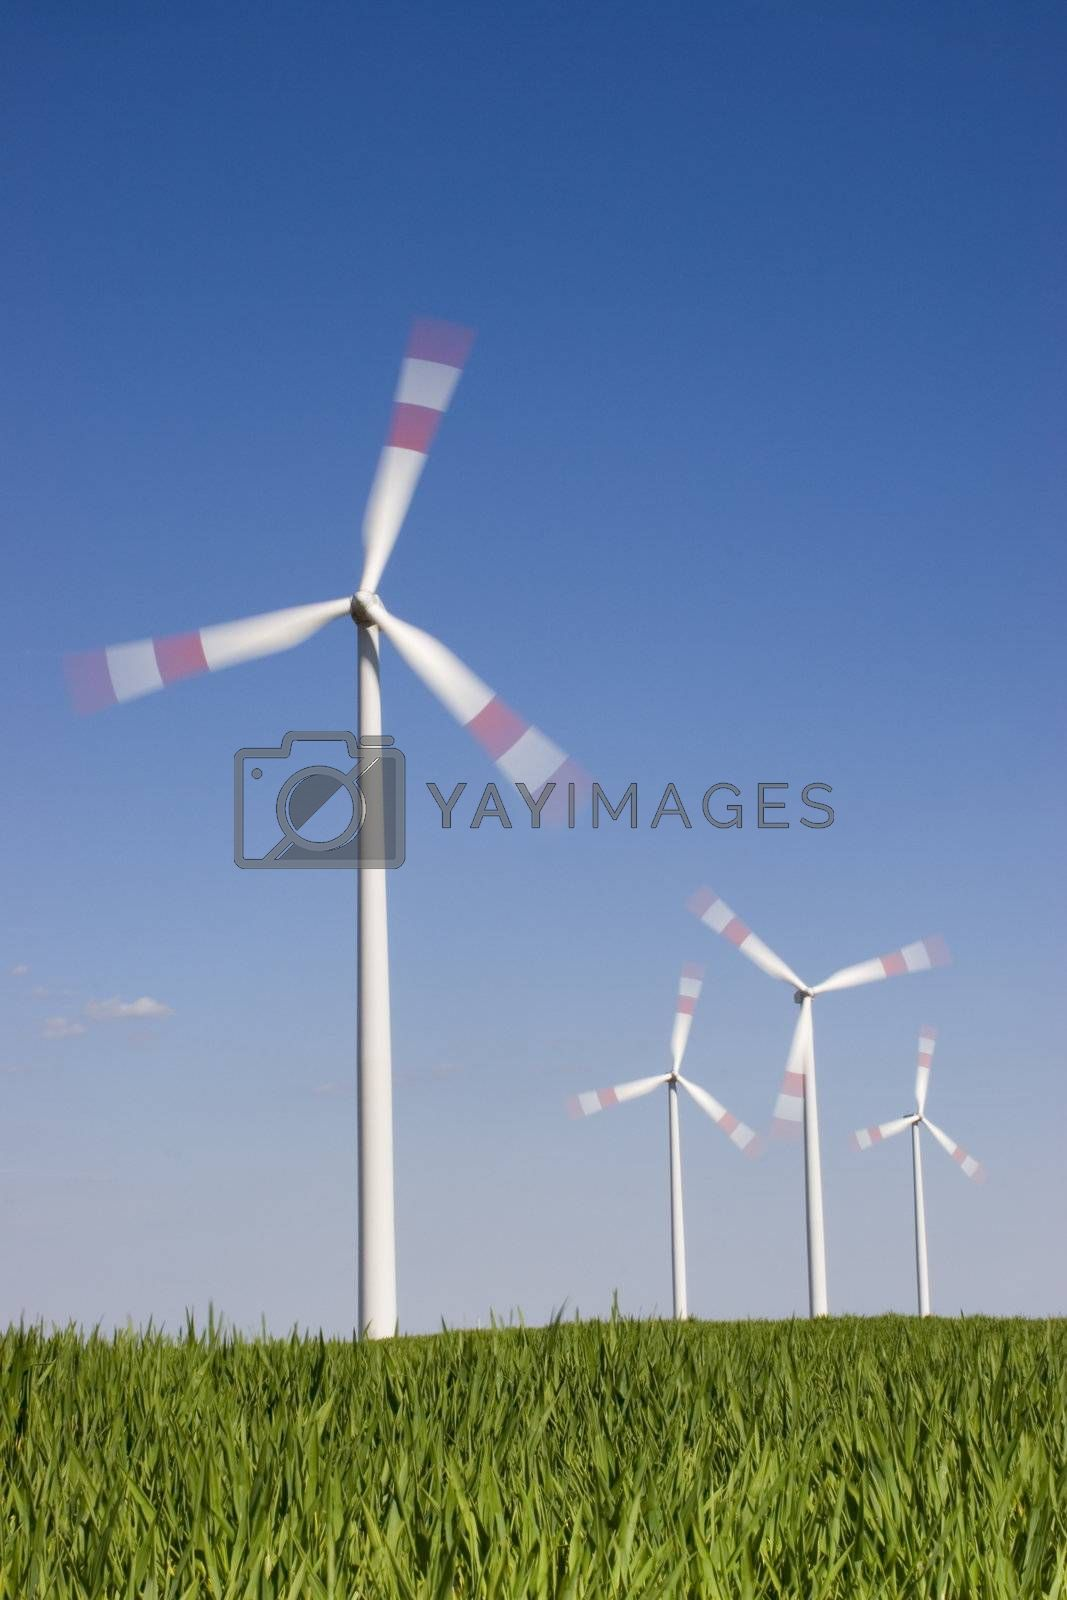 Four motion blurred wind-turbines against the blue sky with green grass in the foreground